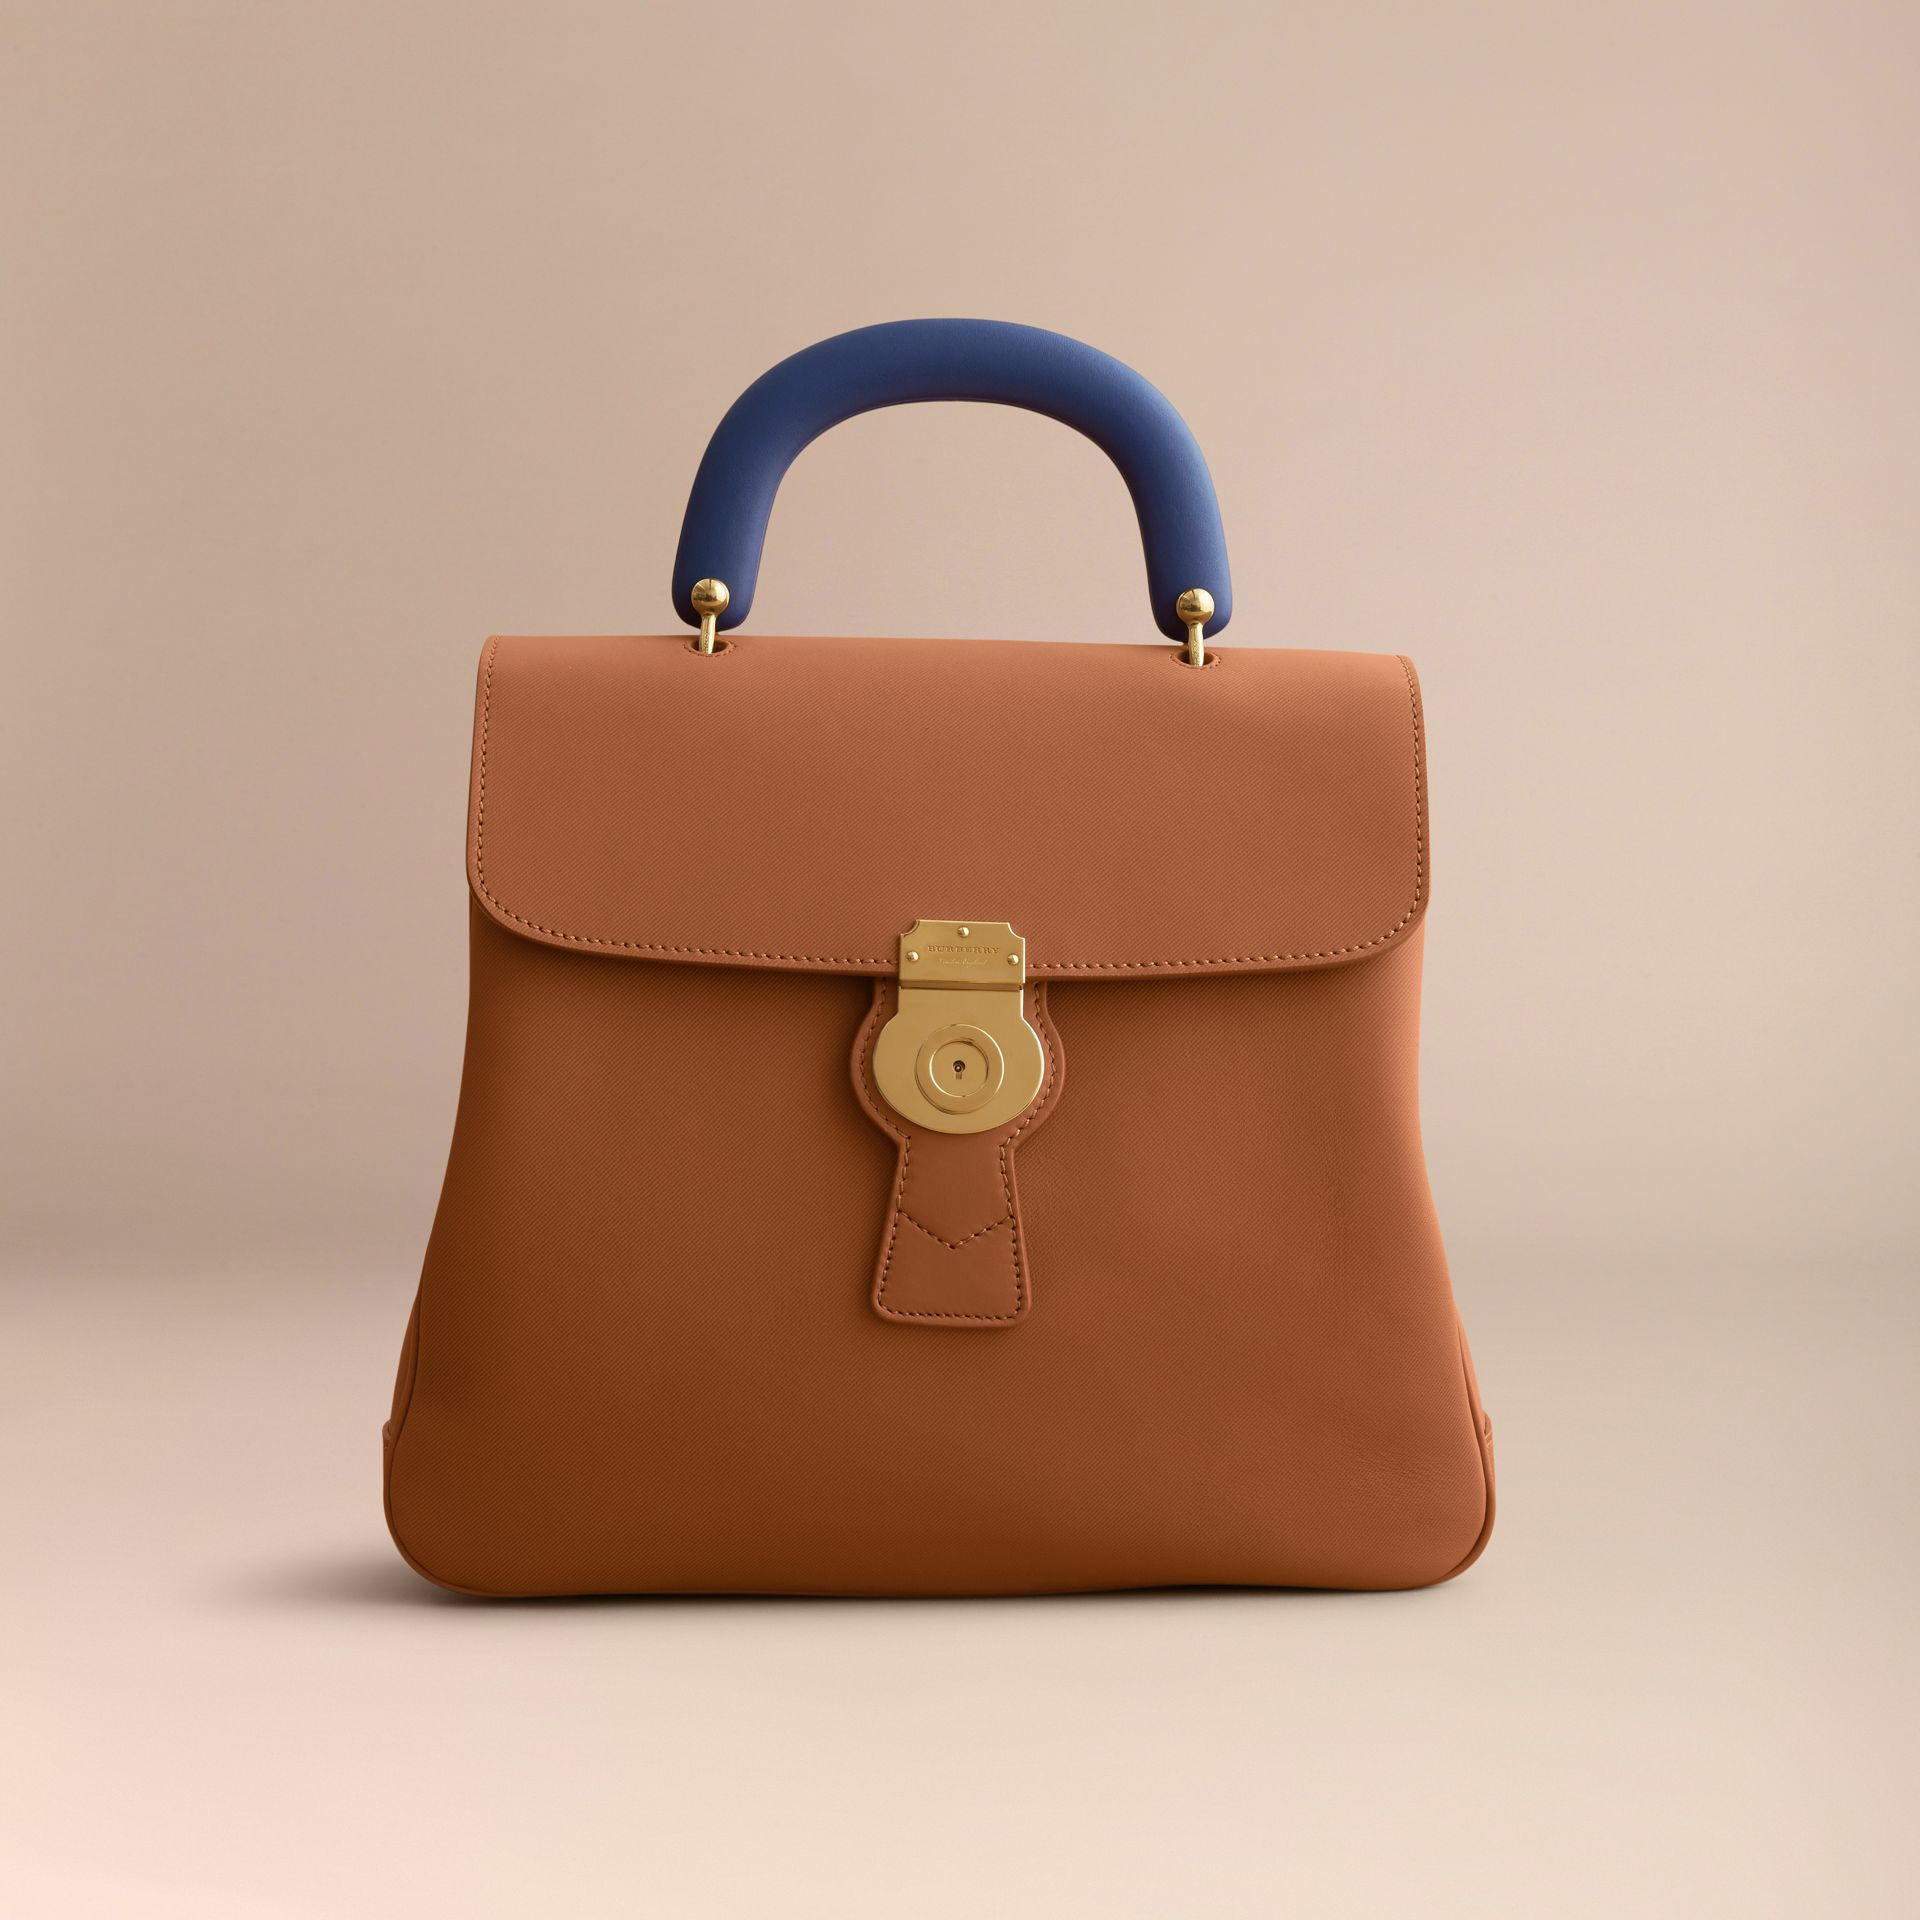 The Large DK88 Top Handle Bag in Bright Toffee - Women | Burberry - gallery image 7